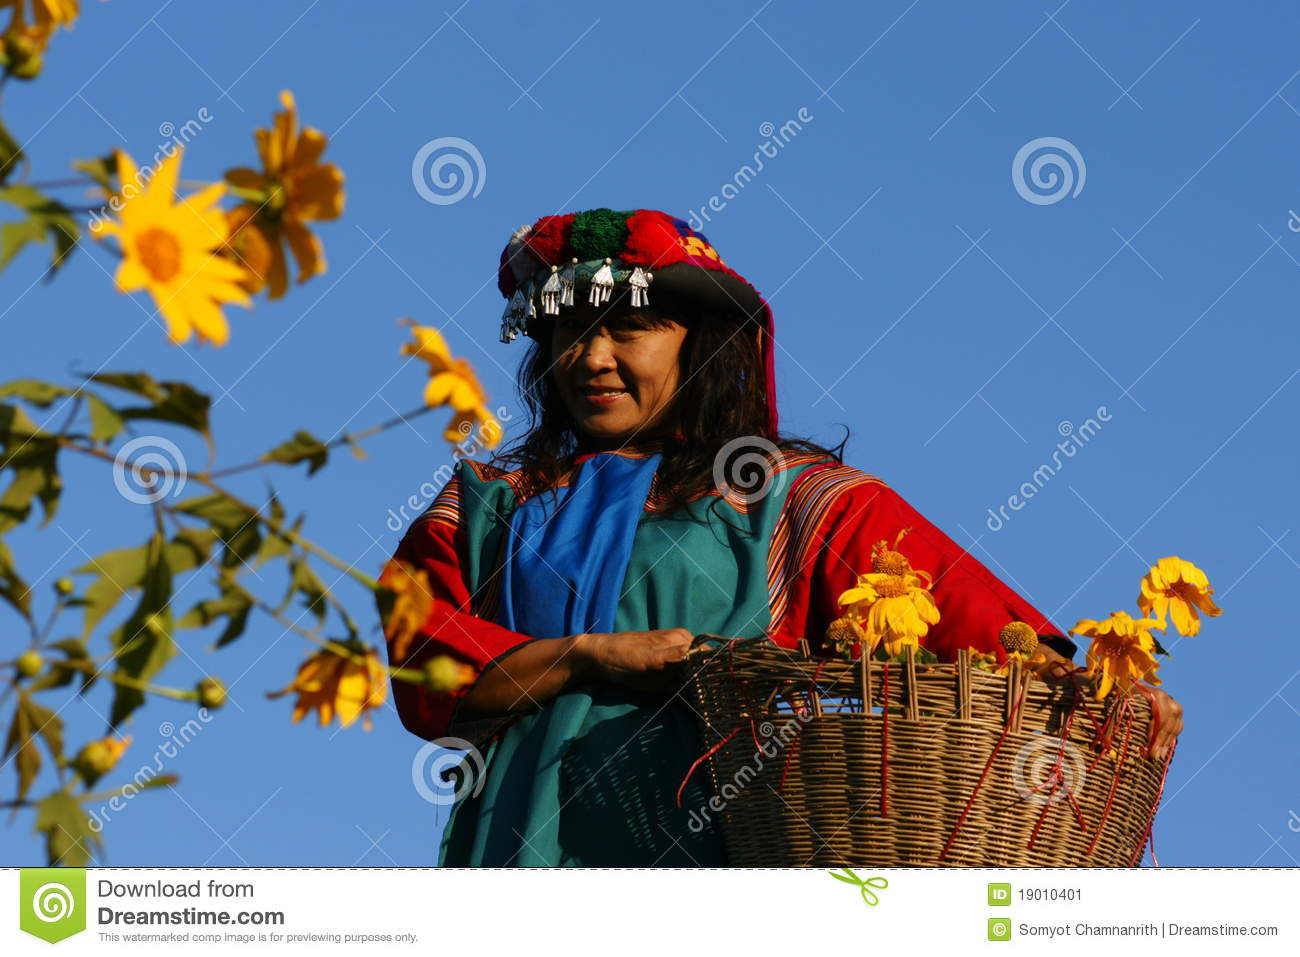 Lisu hill tribe woman in costume